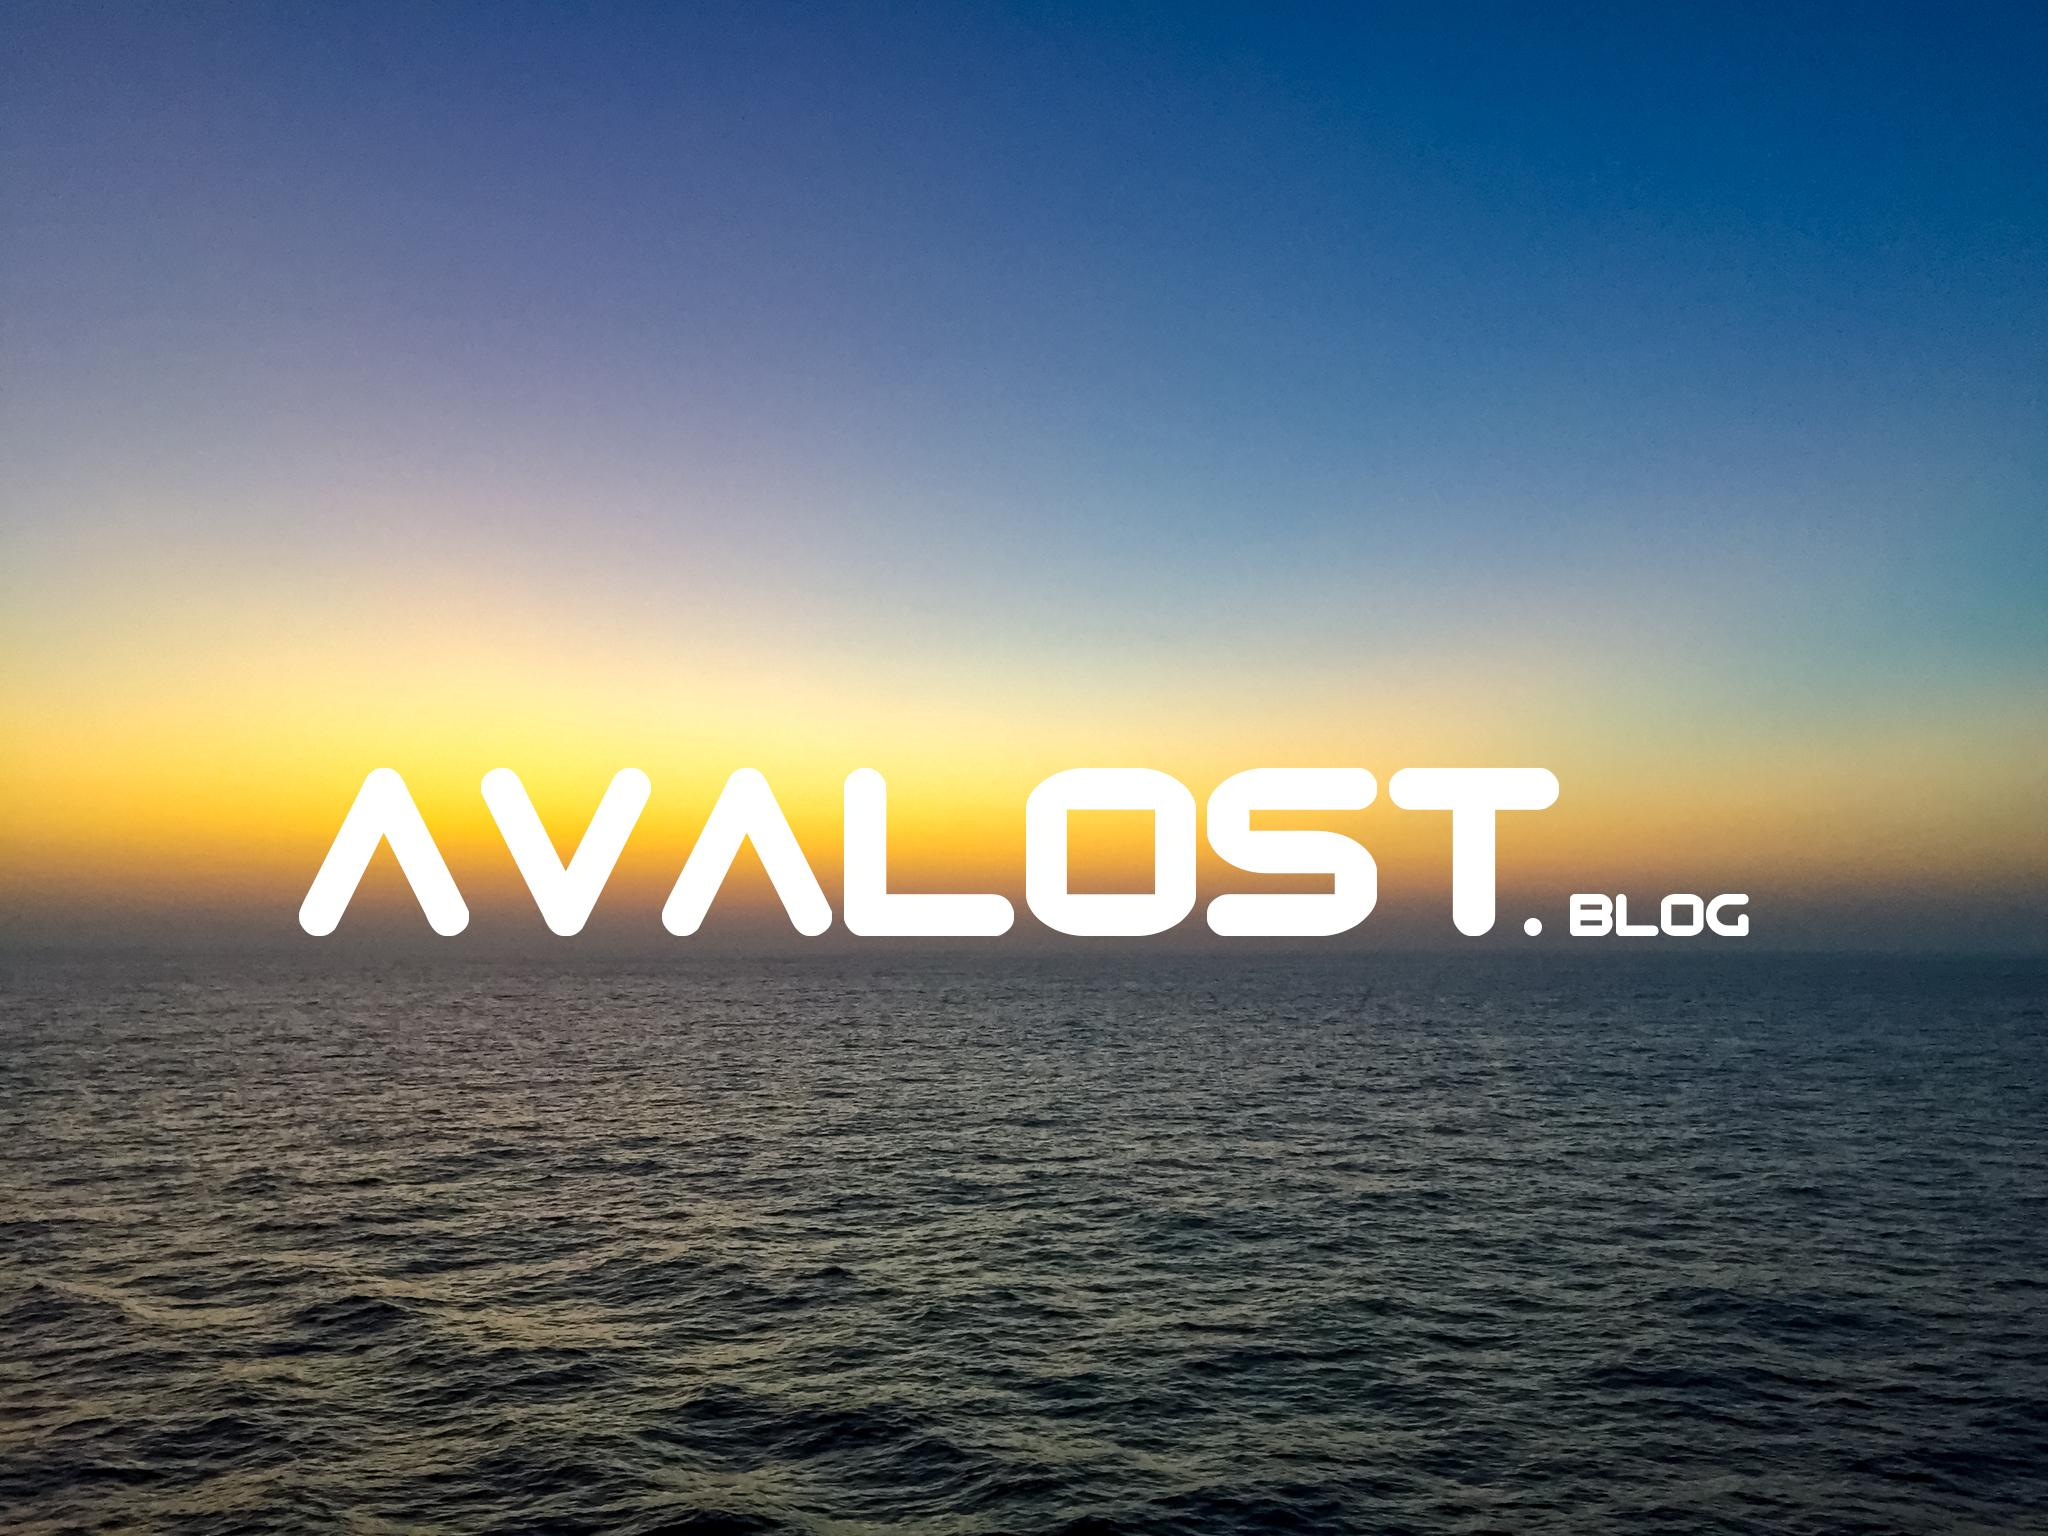 Avatar - AVALOST